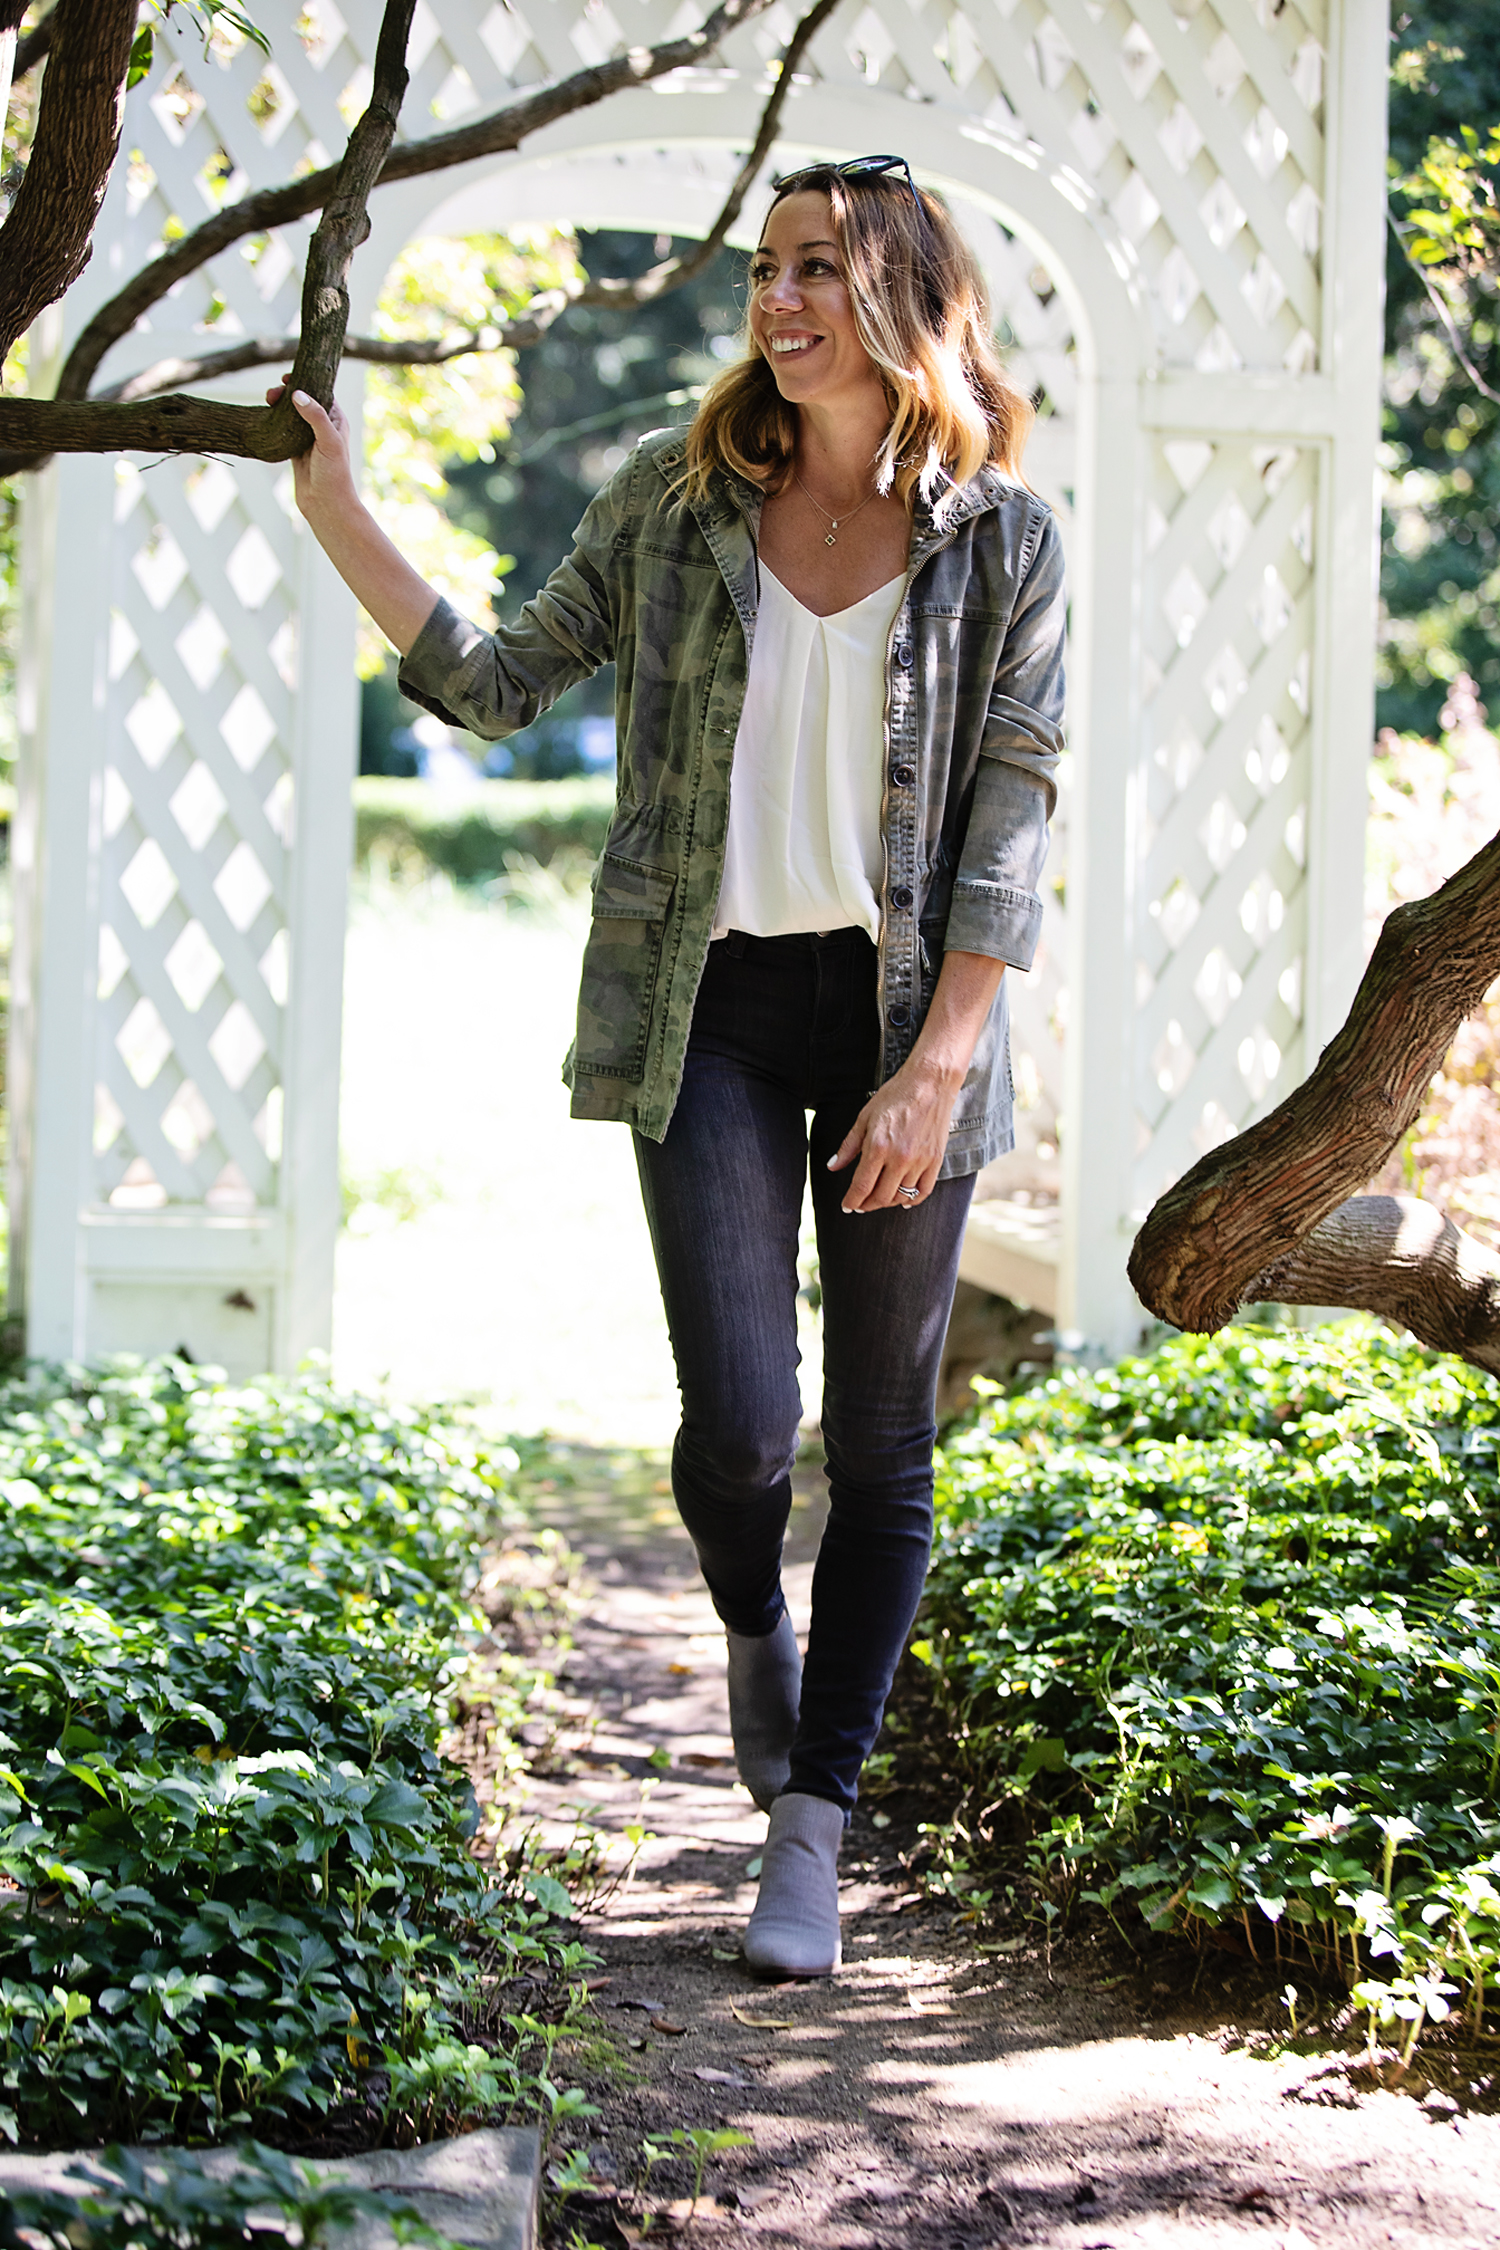 The Motherchic wearing camo utility jacket